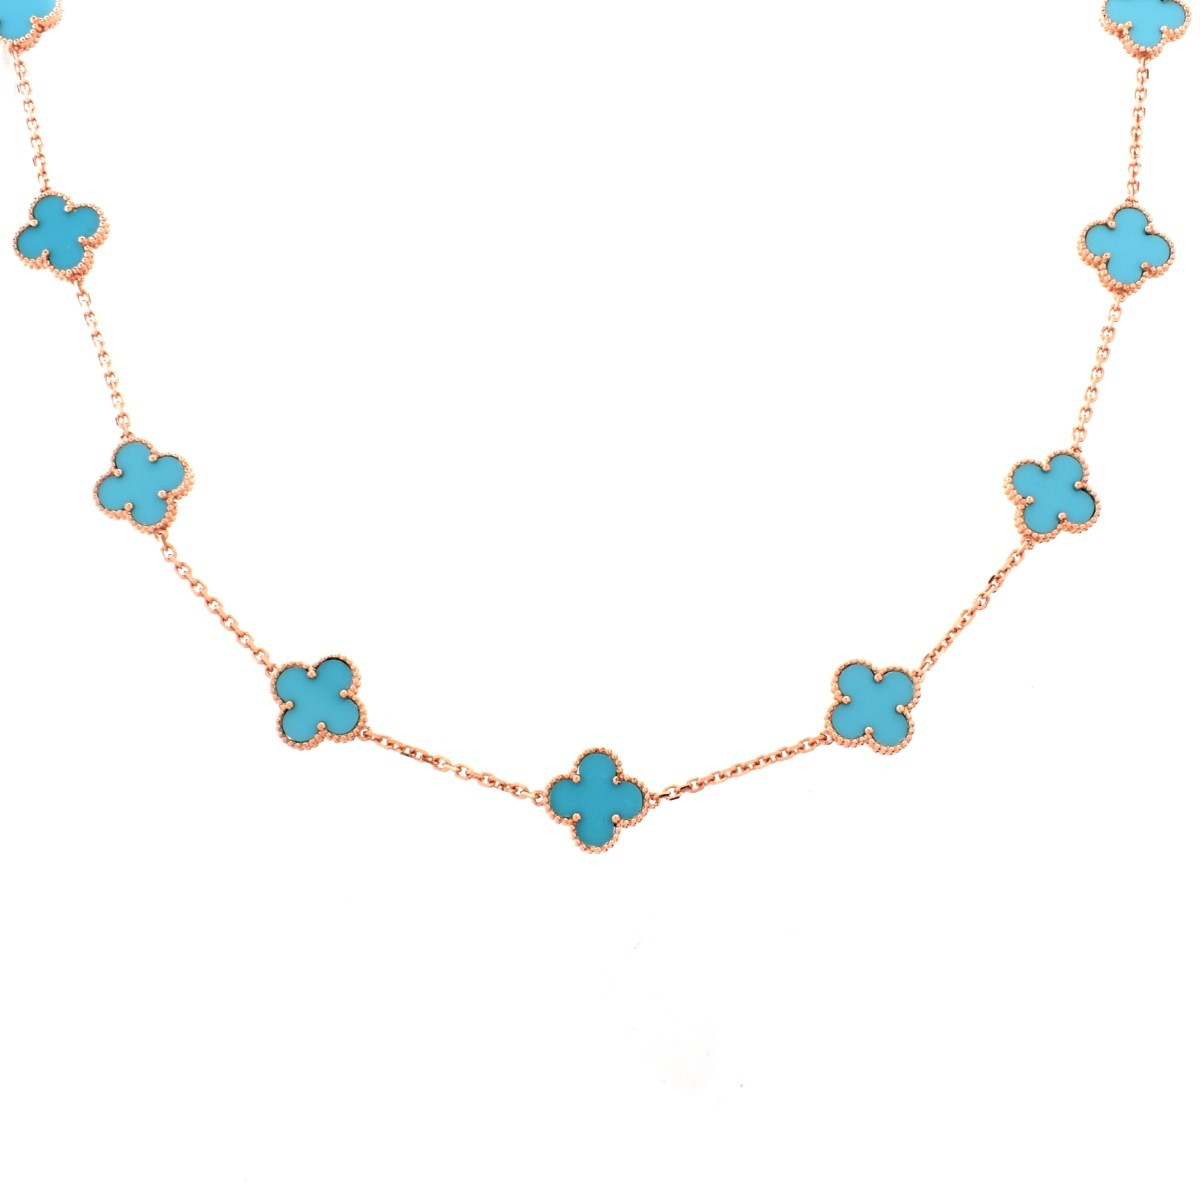 Van Cleef Replica Necklace